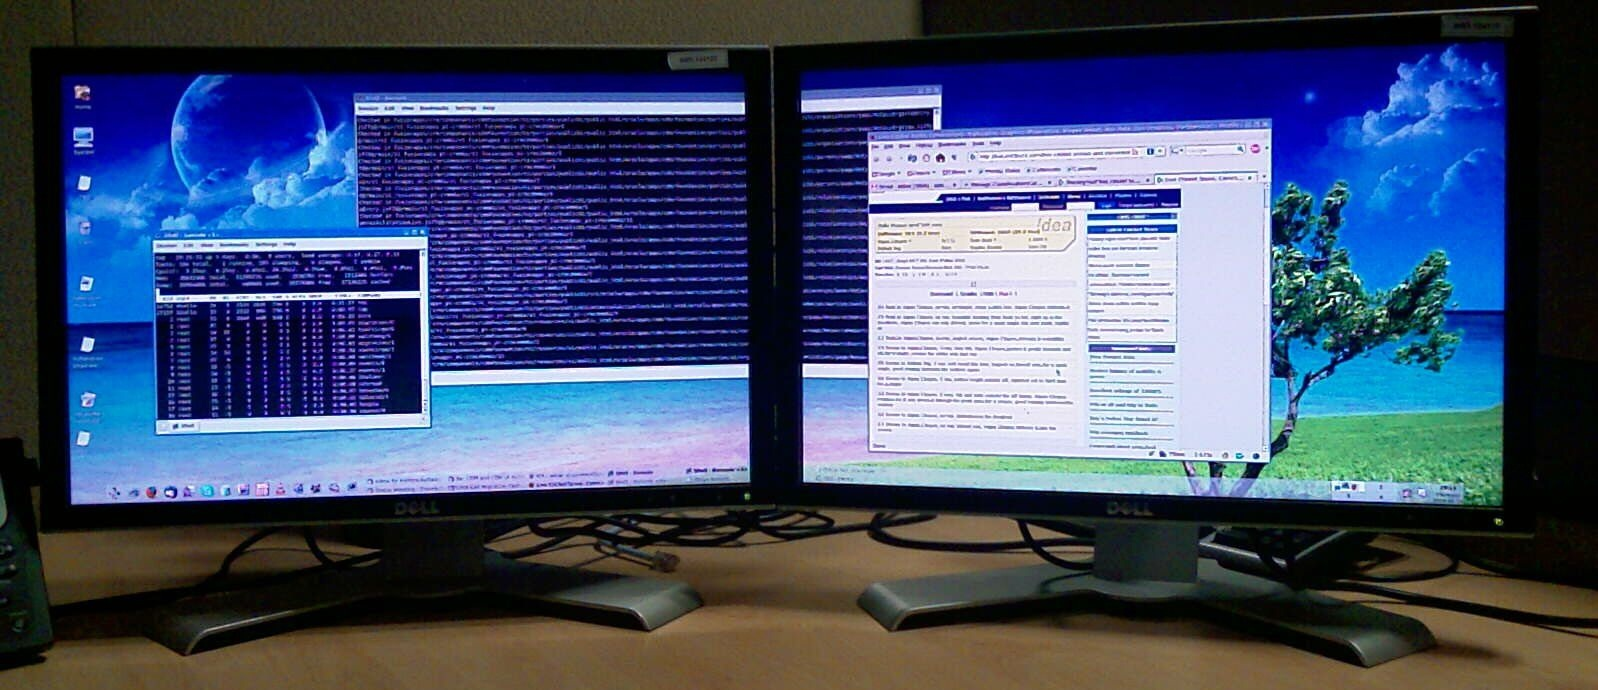 Free Download Wallpapers On A Dual Monitor Setup On Windows